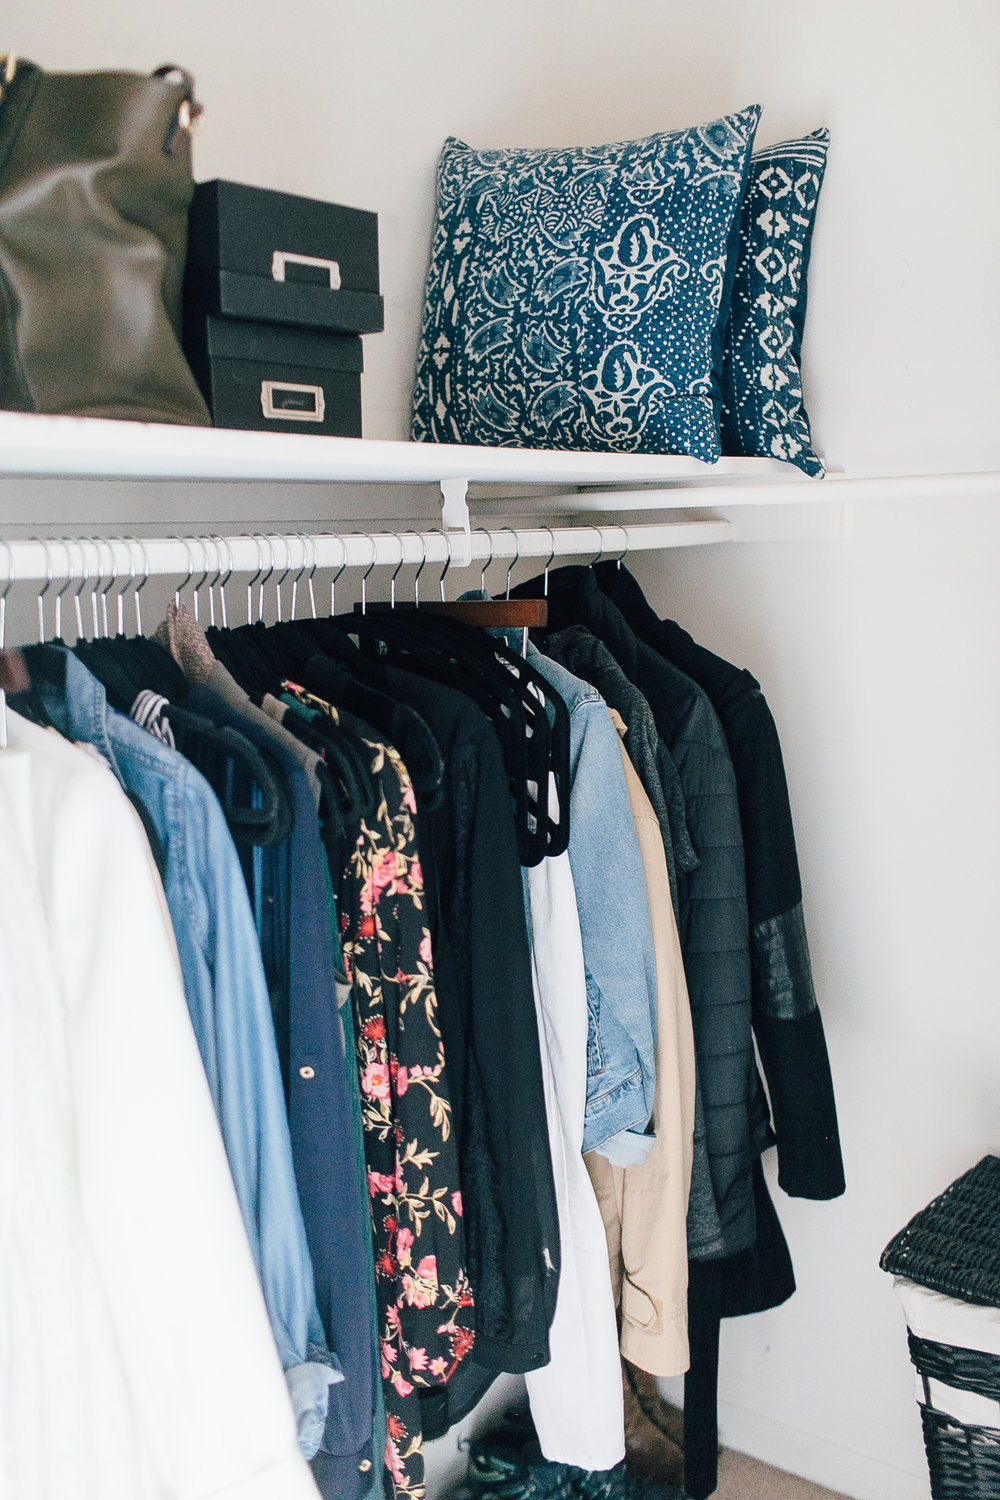 Tips for Organizing Your Closet - Making Room for Peace 04.jpg